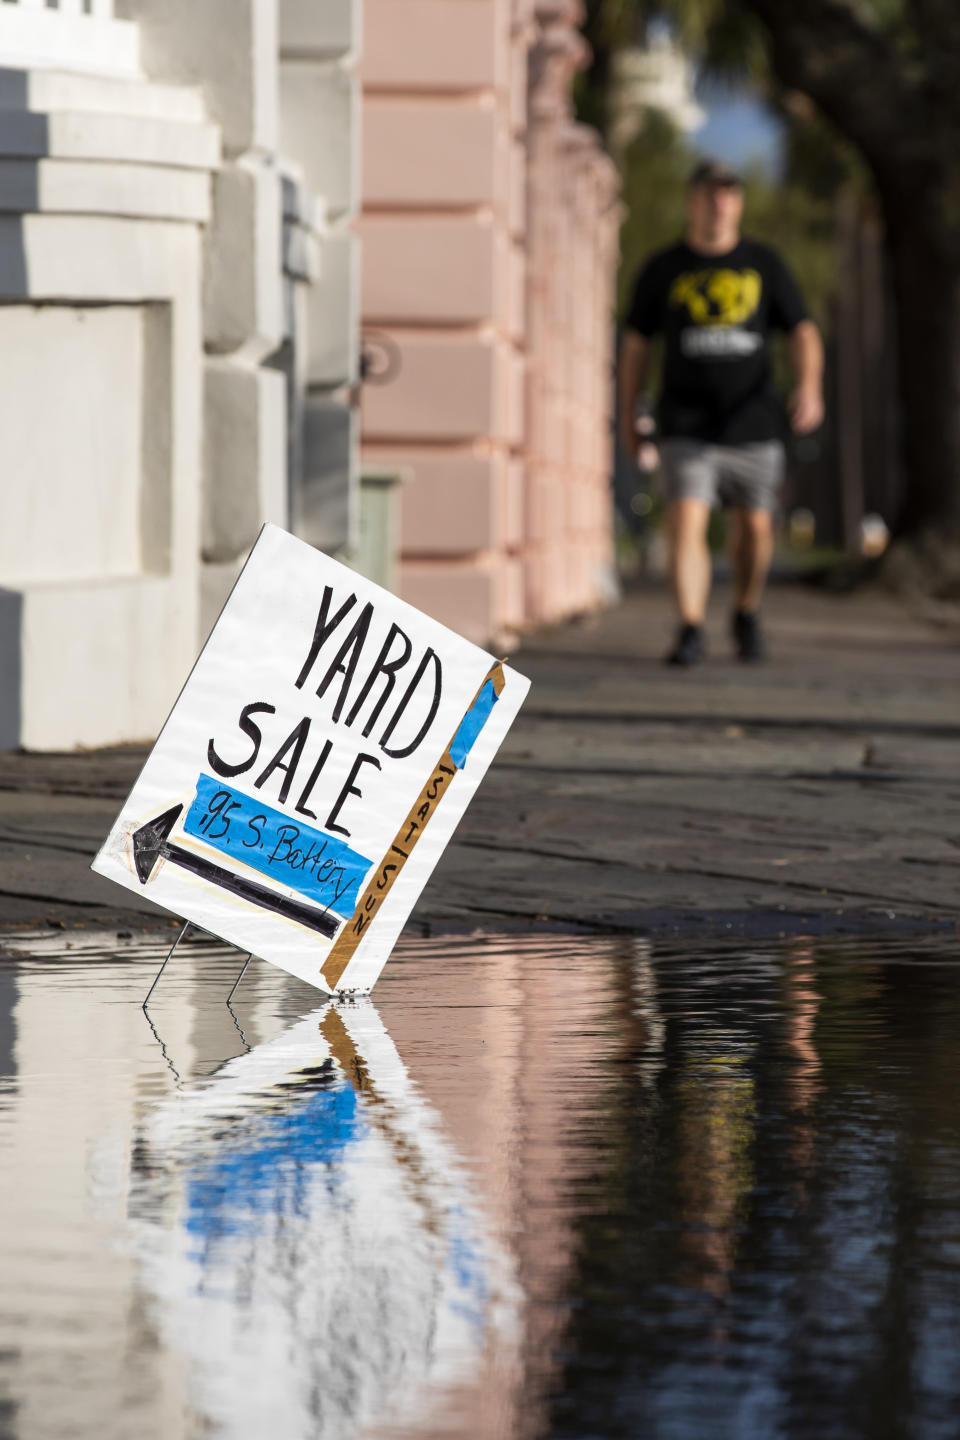 A yard sale sign reflects in flood waters as a king tide rolls into the Battery in Charleston, S.C. Sunday, Nov. 15, 2020. Charleston has remained relatively unscathed this hurricane season. That means more time to mull a $1.75 billion proposal by the Army Corps of Engineers that features a sea wall along the city's peninsula to protect it from deadly storm surge during hurricanes. (AP Photo/Mic Smith)